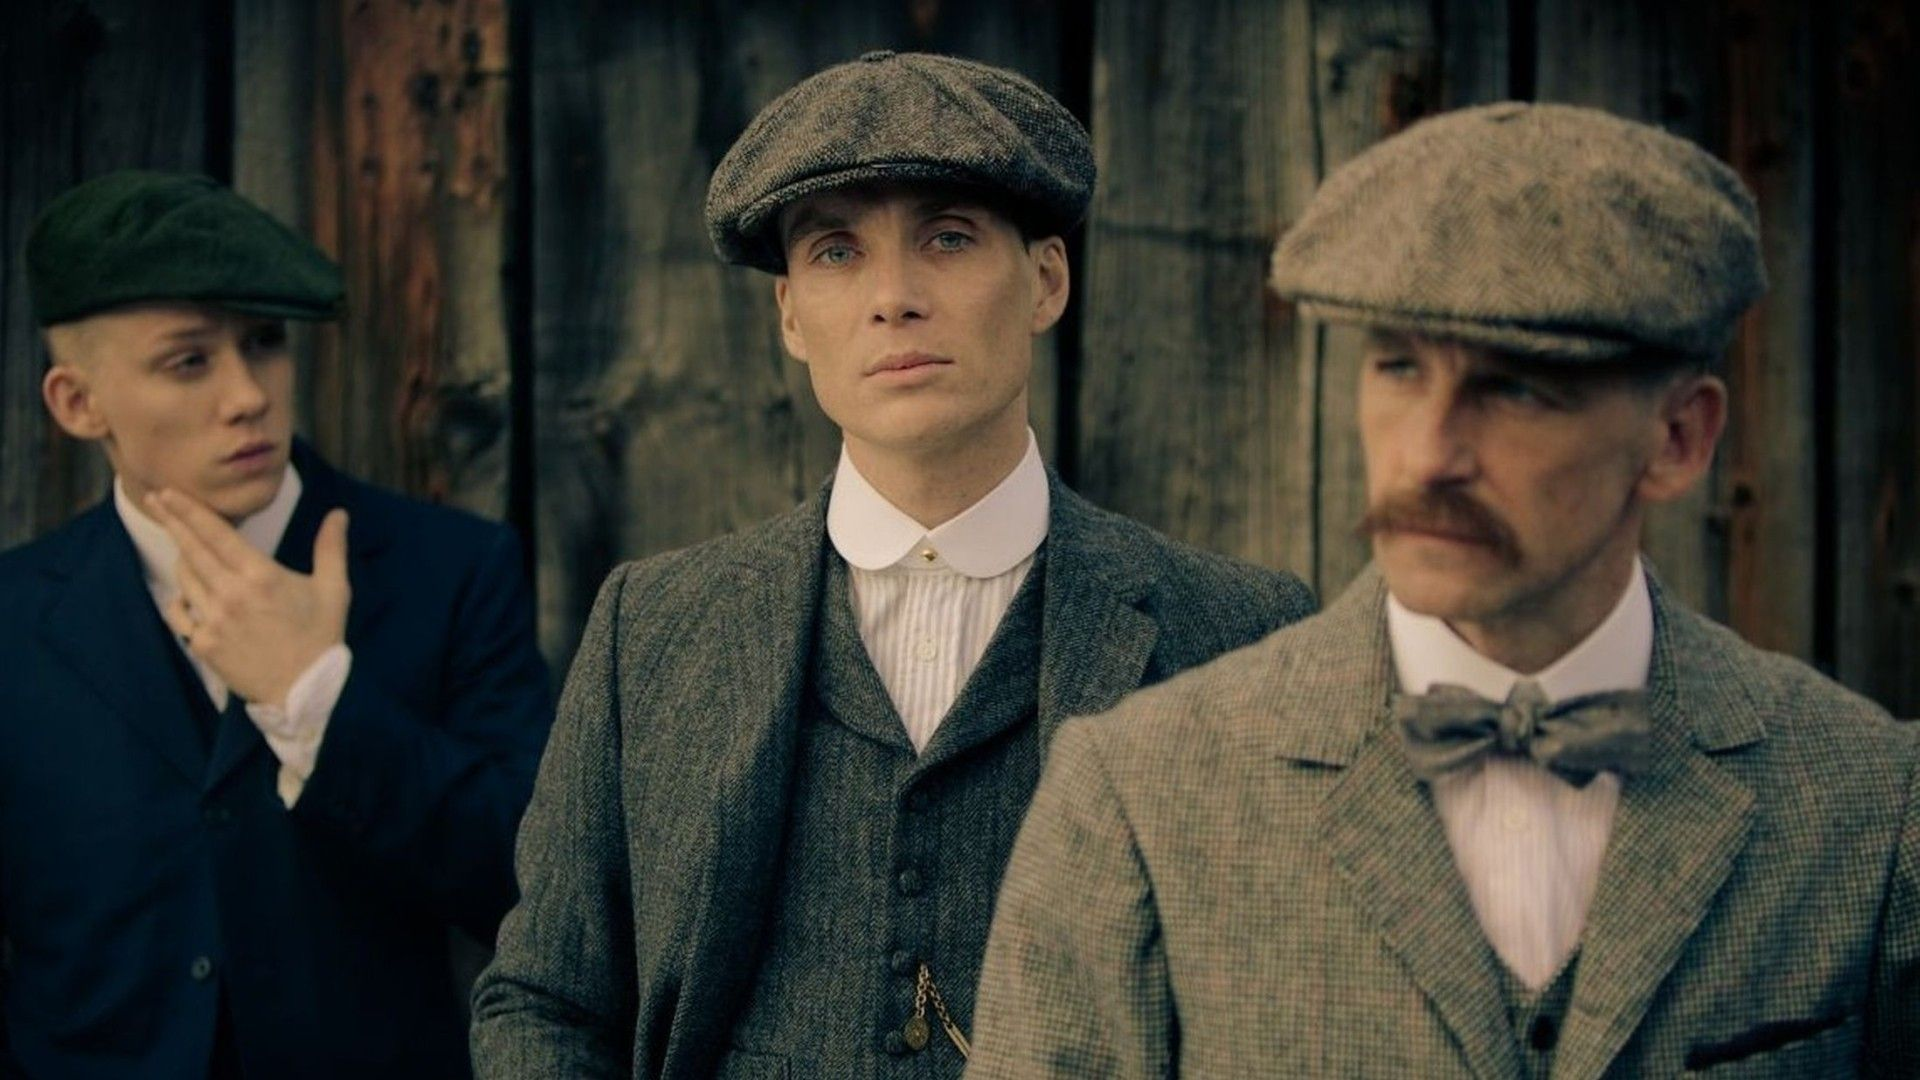 1920x1080 Peaky Blinders Wallpapers Hd Desktop And Mobile